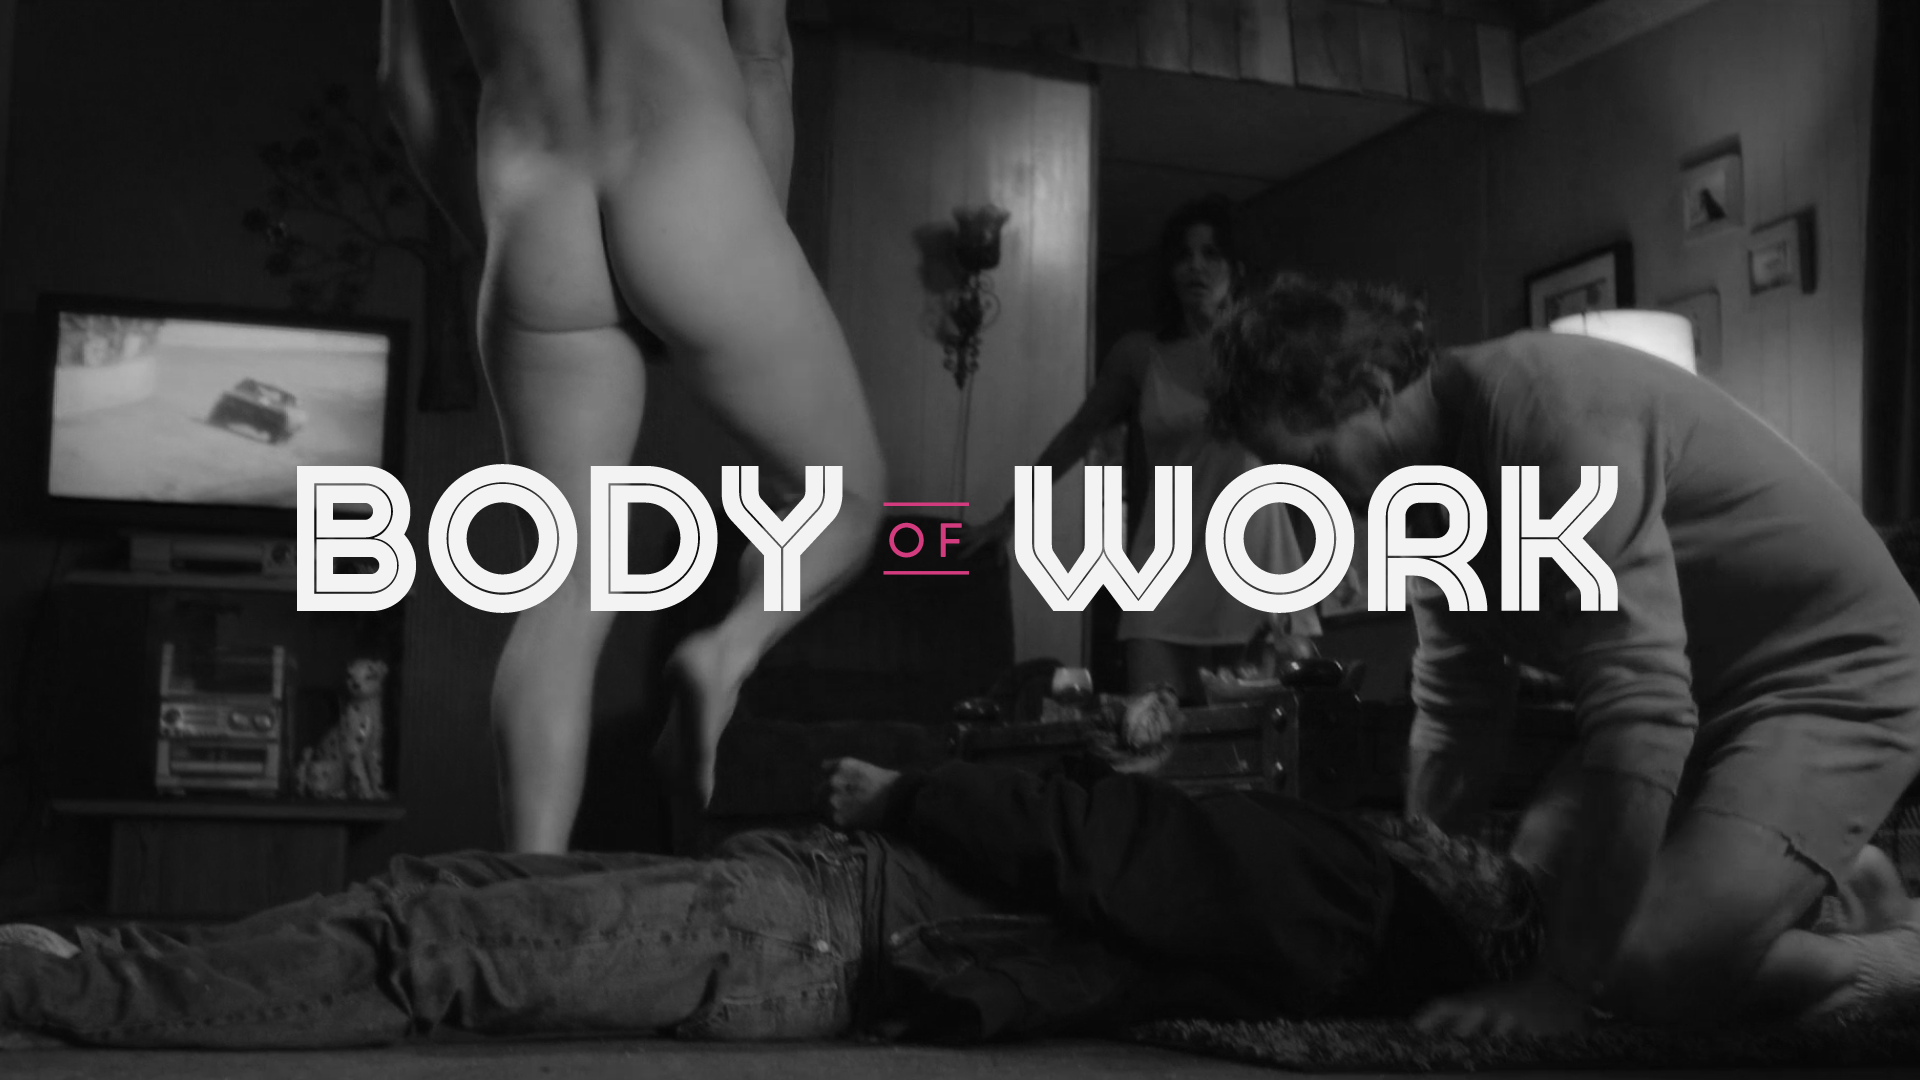 Bodyofwork actor 00 00 04 07 still001 nude preview image